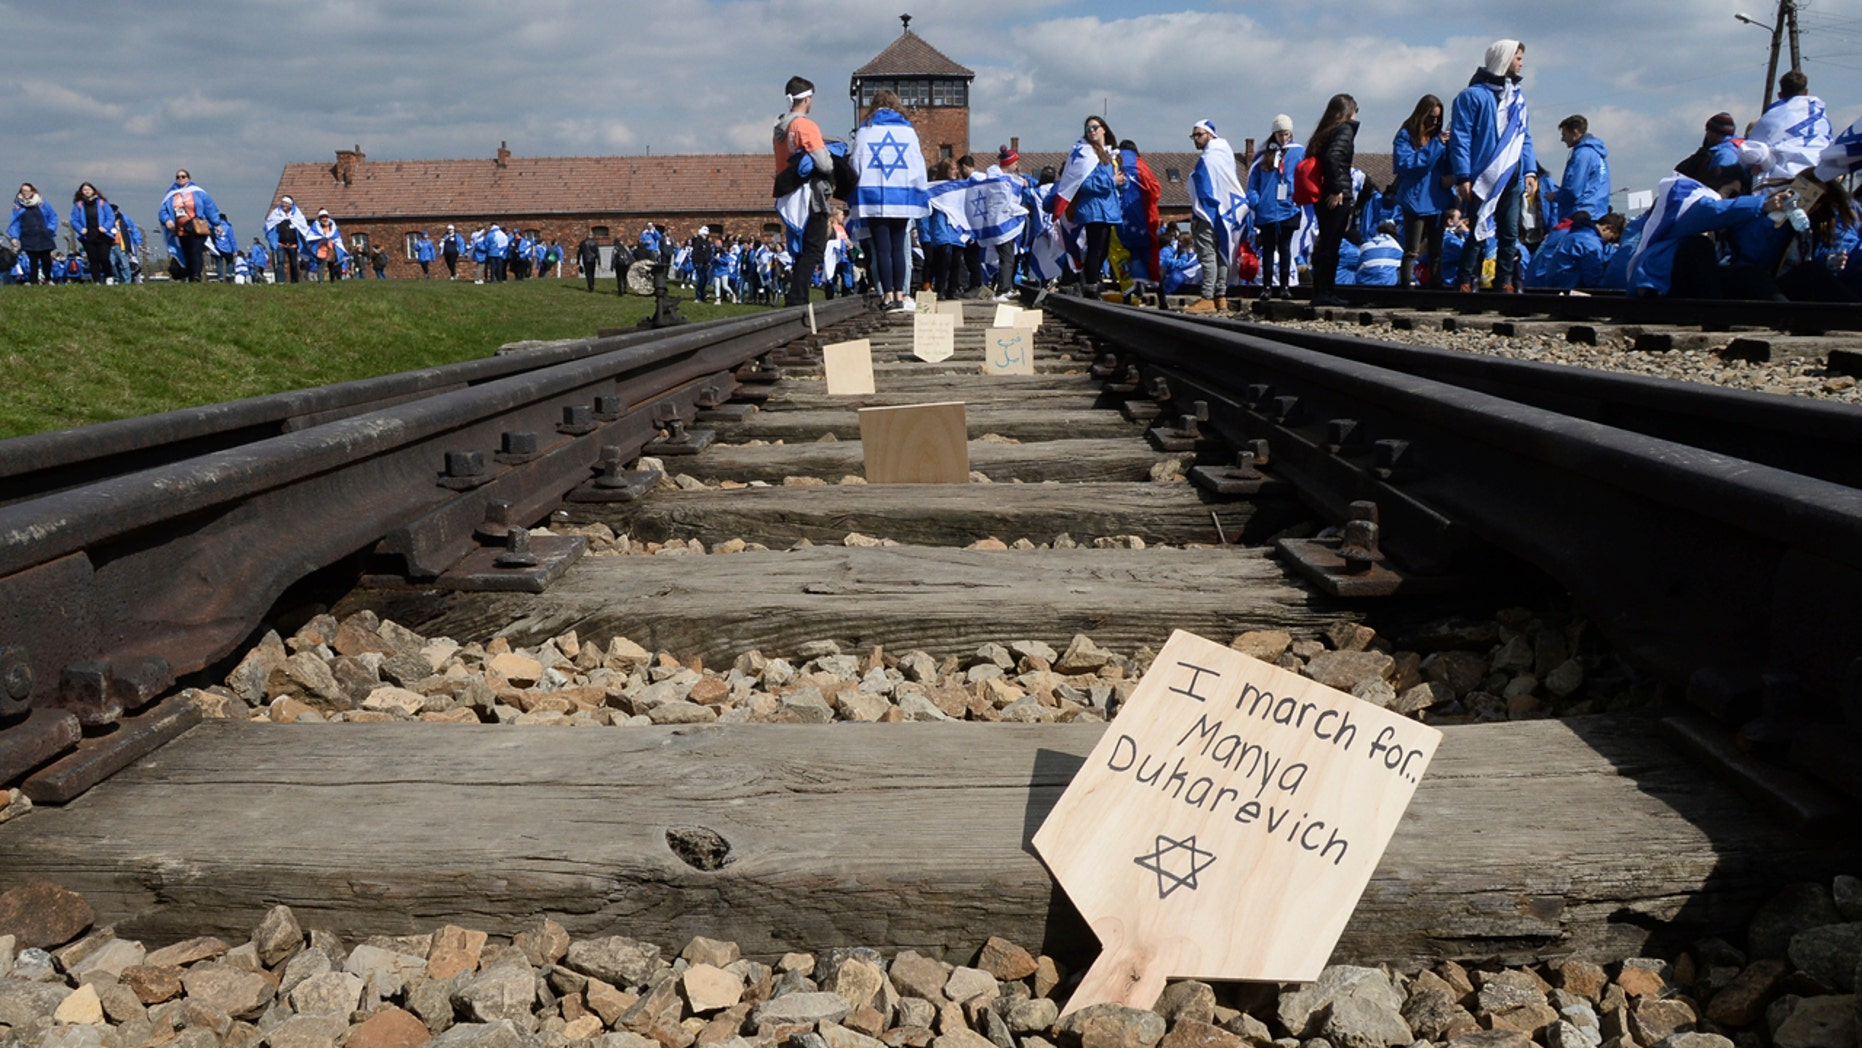 Participants of the yearly March of the Living place memory plaques on the rails in the former German Nazi Death Camp Auschwitz-Birkenau, in Brzezinka, Poland, Monday, April 24, 2017.